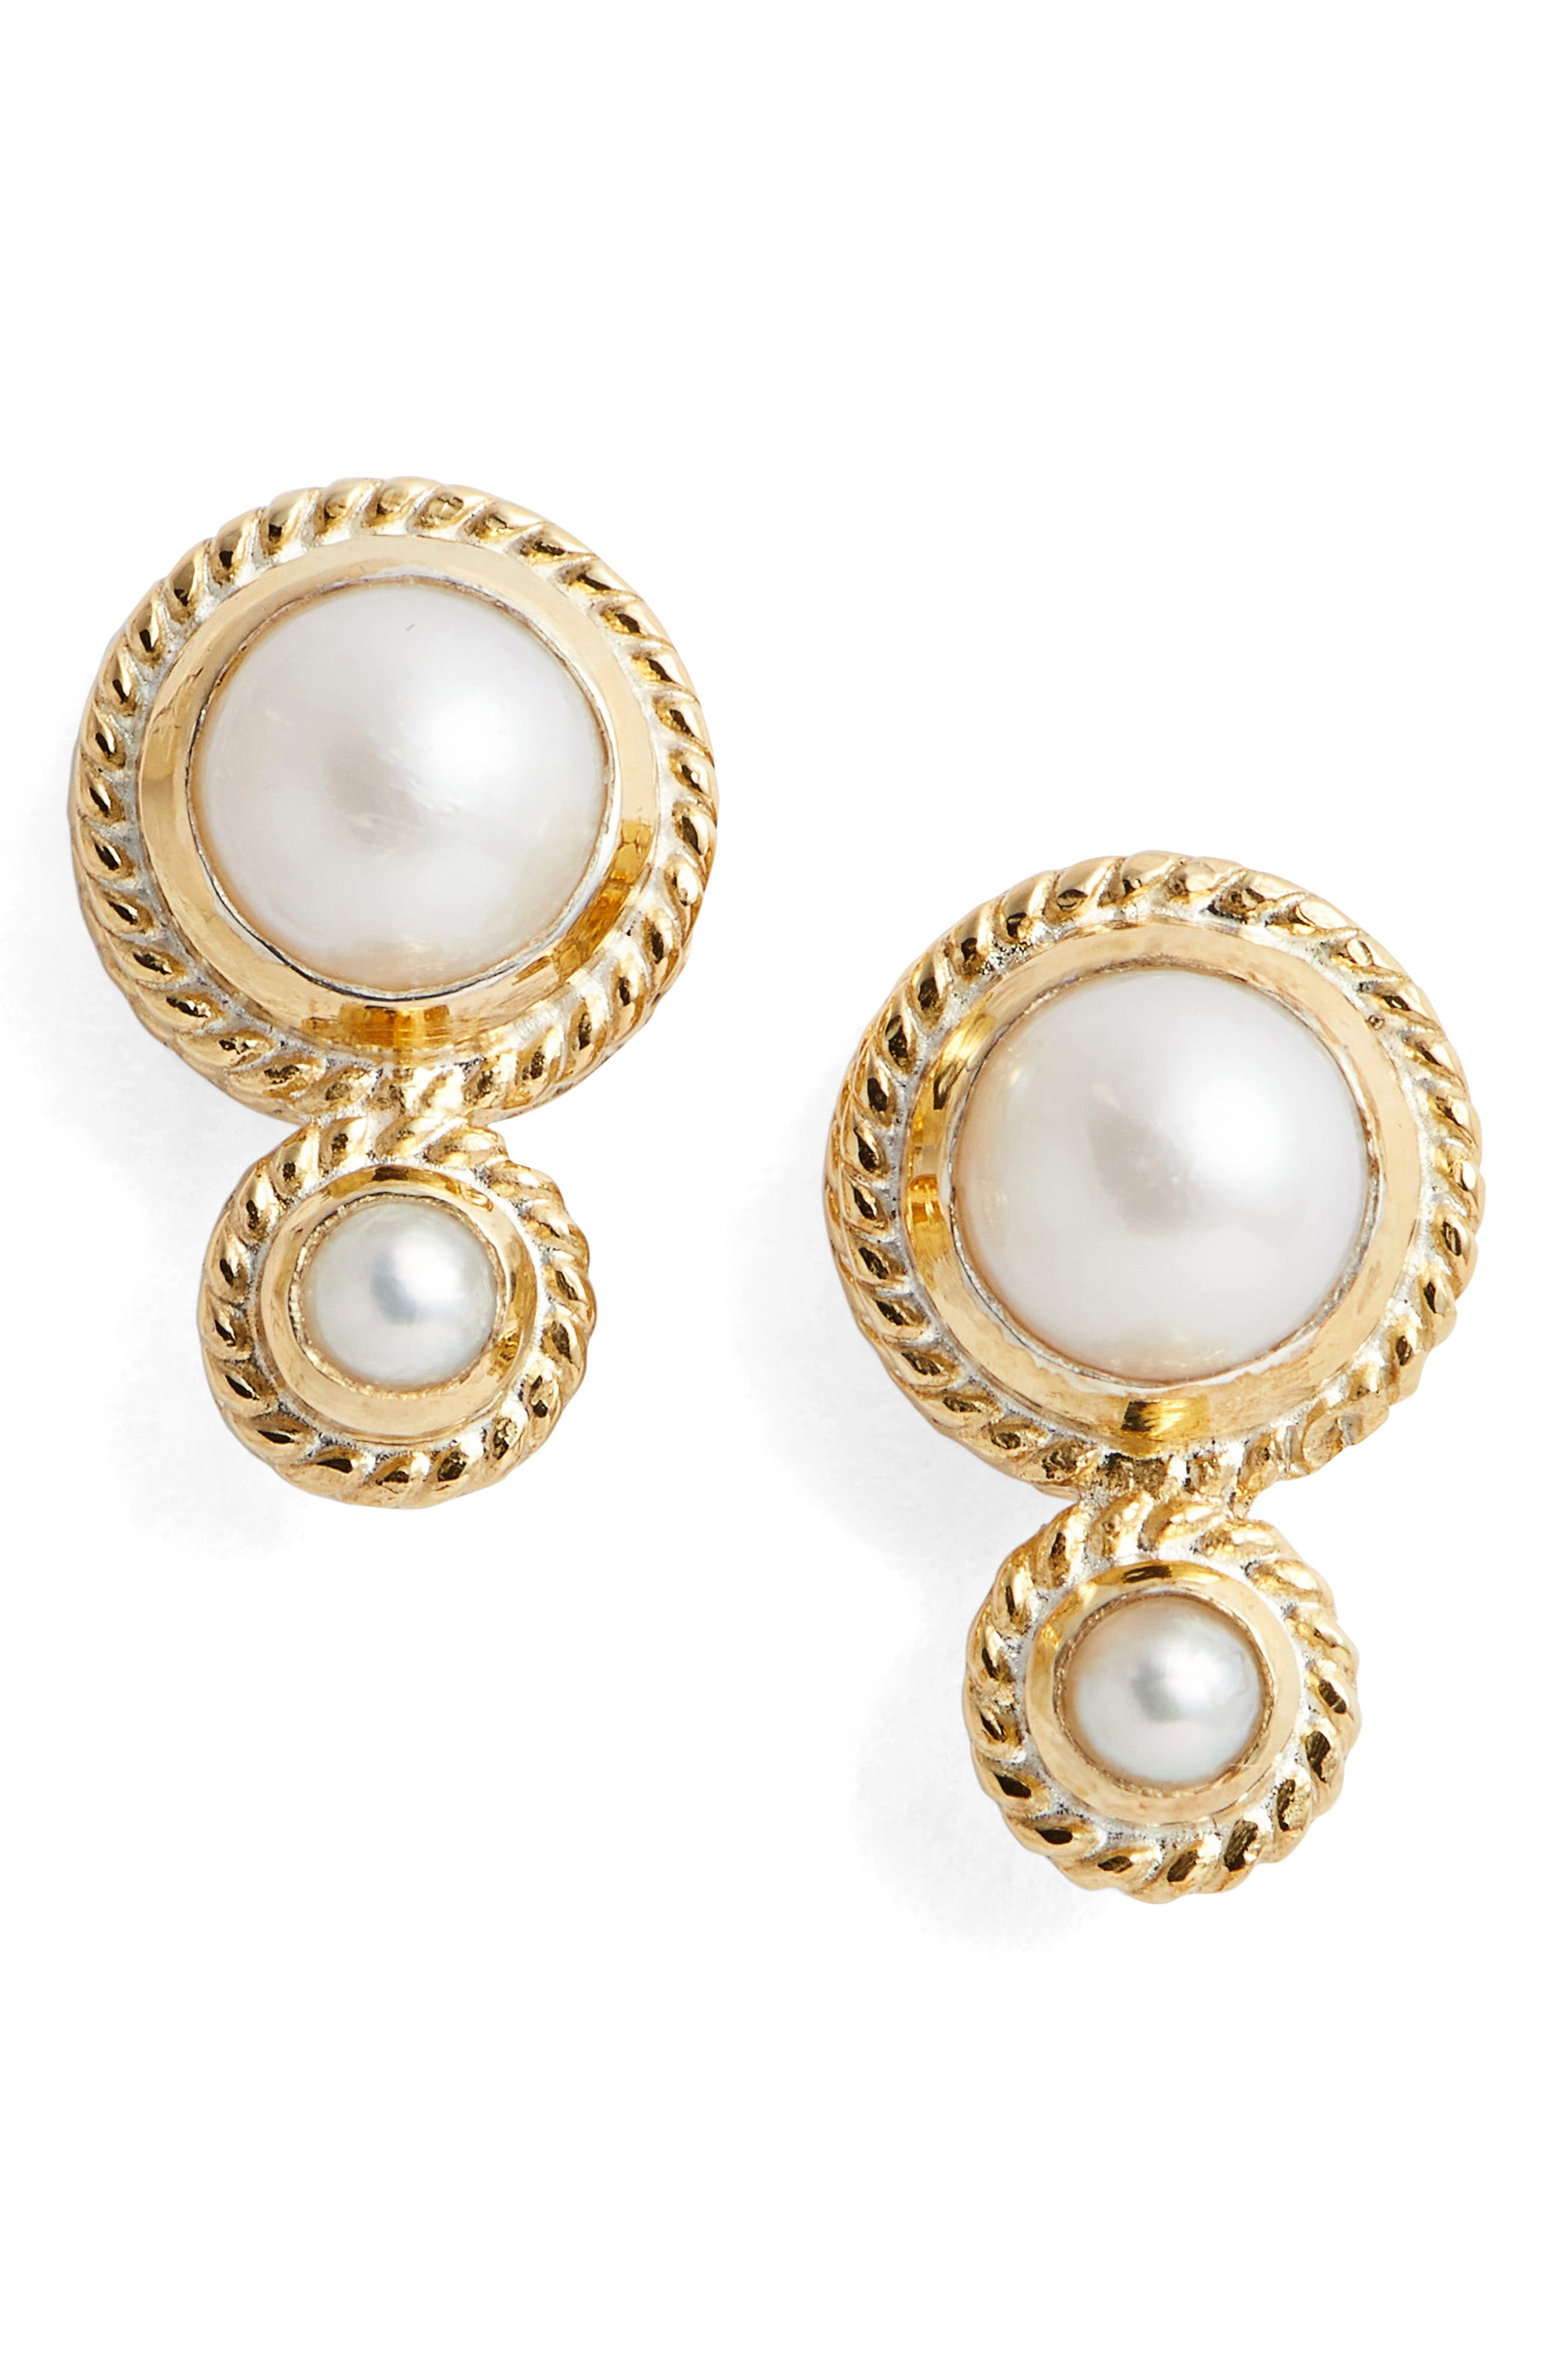 Pearl Double Stud Earrings,                             Main thumbnail 1, color,                             710